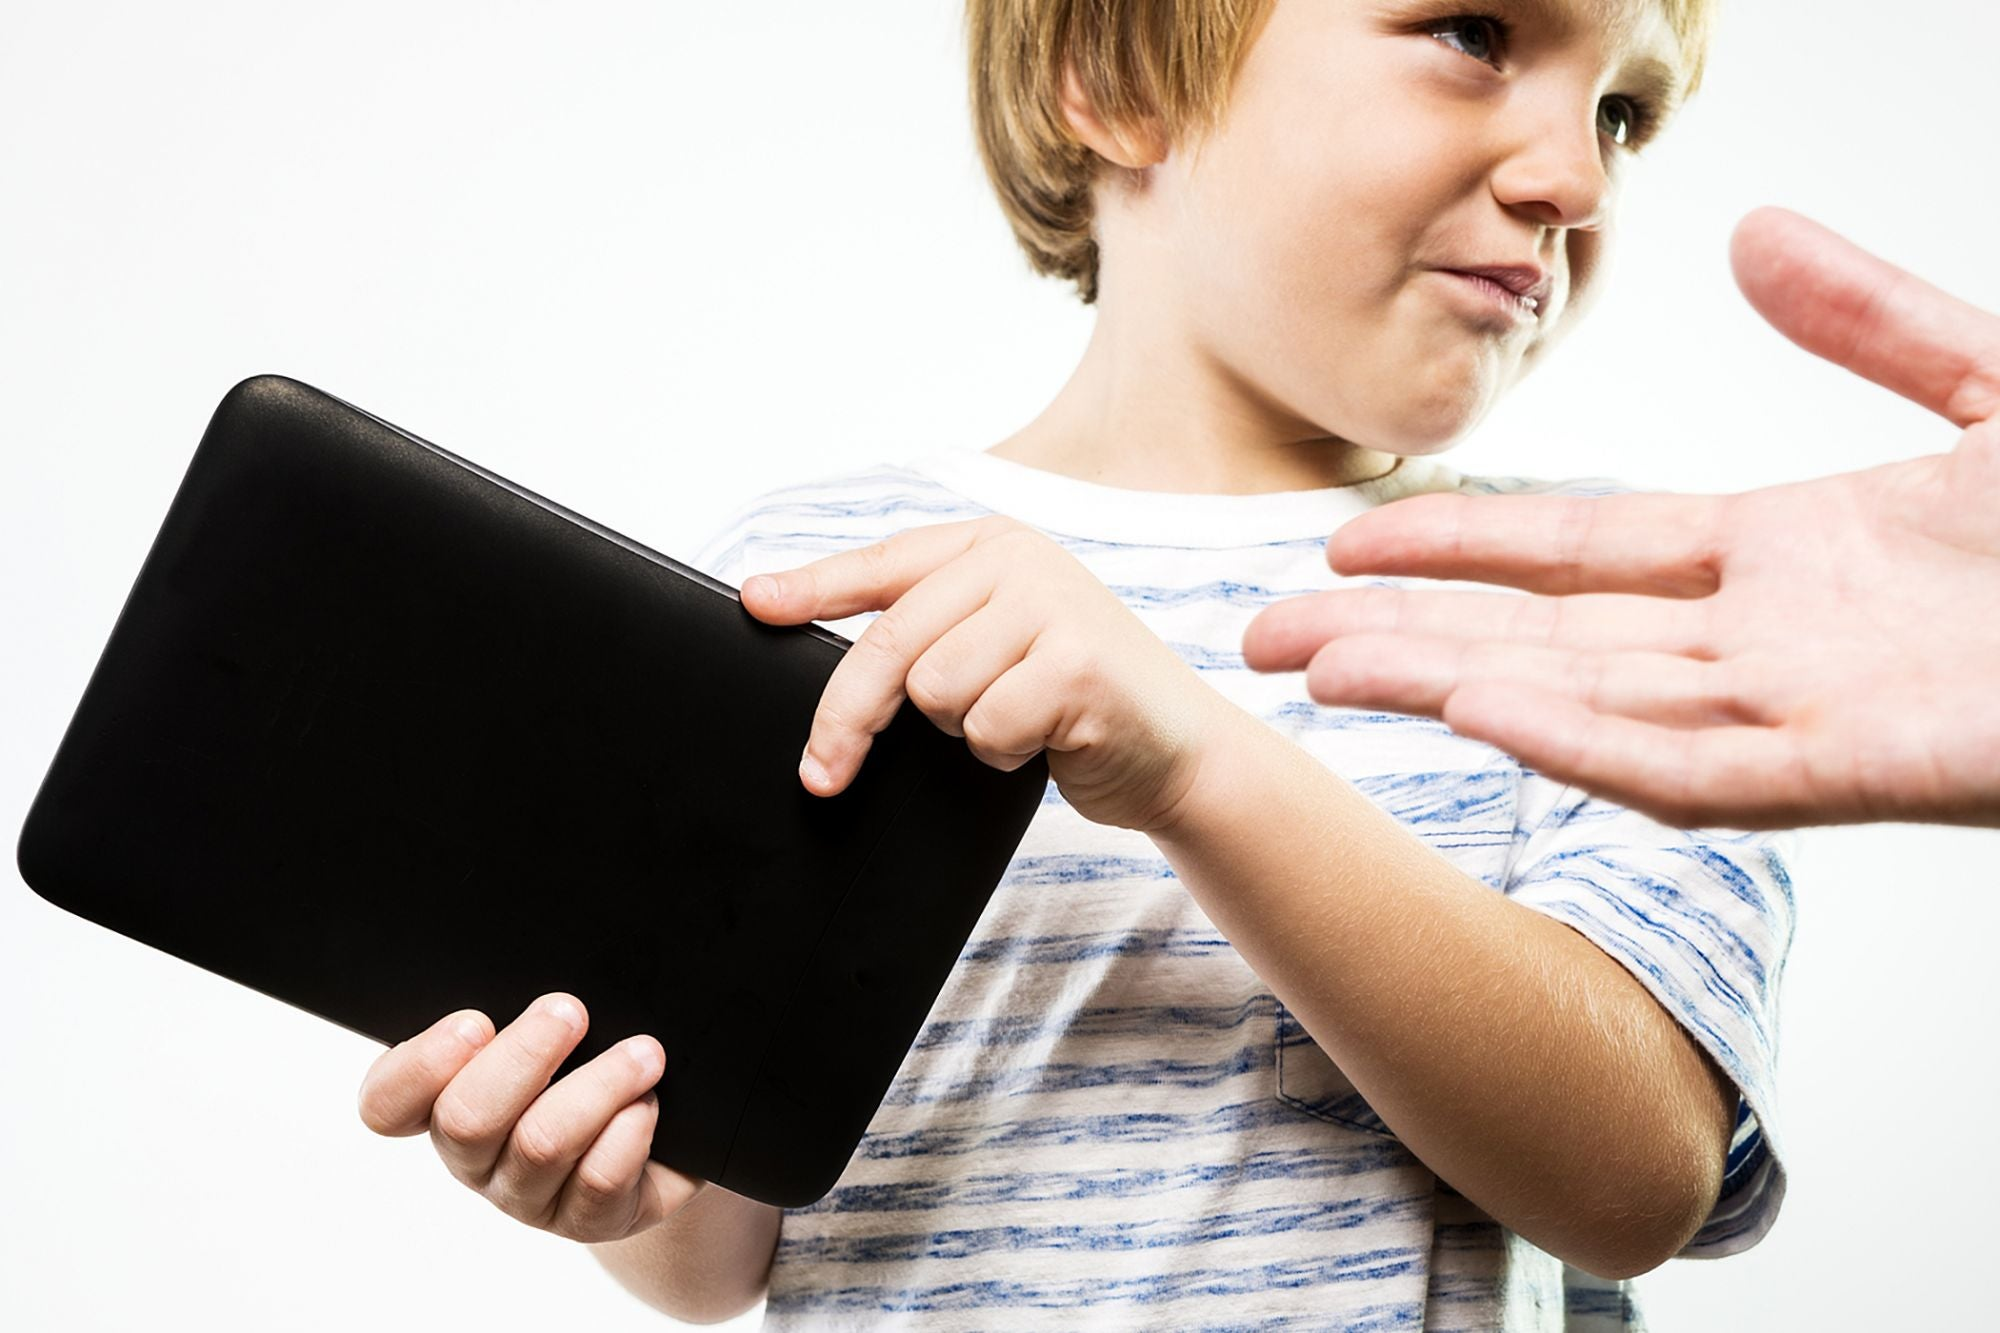 Am I a Hypocrite If I Shield My Child From the Digital Tools I Help Create?